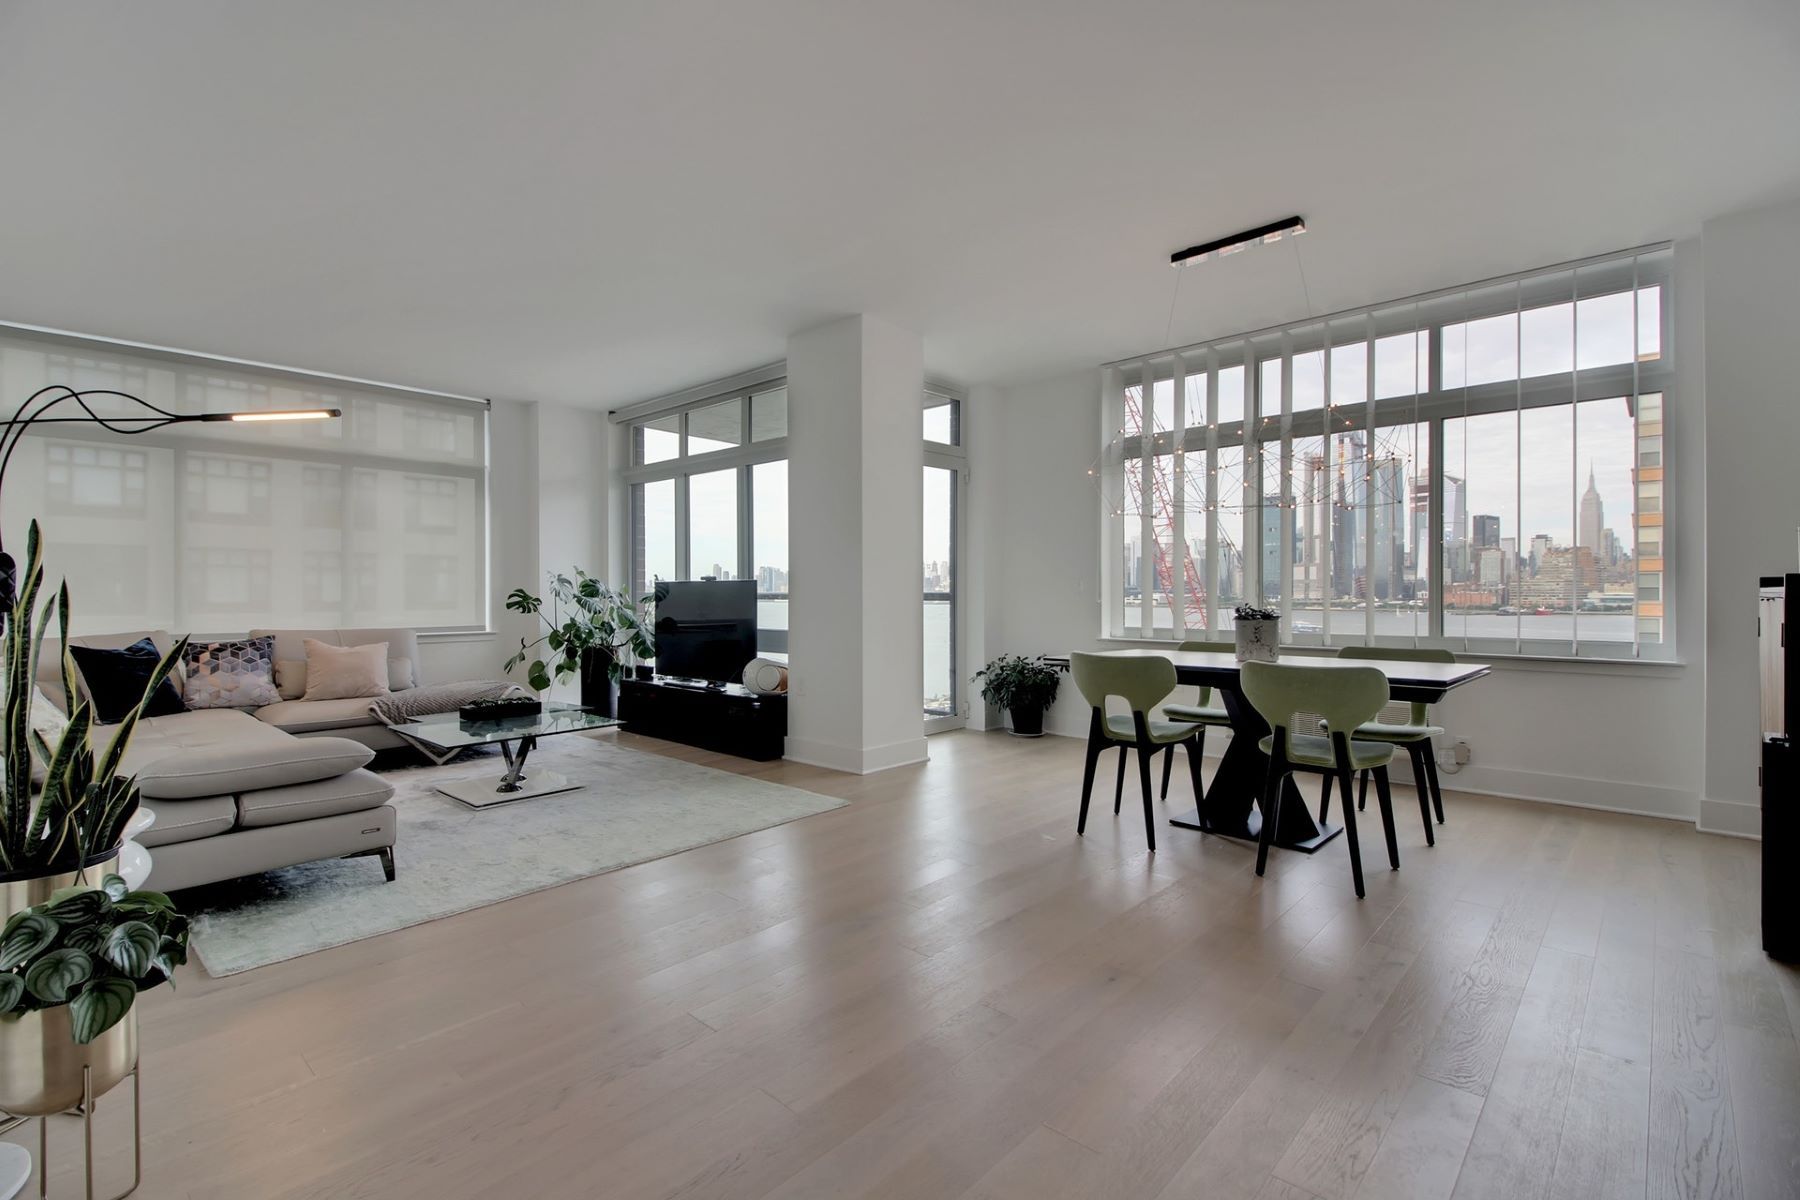 Apartment for Rent at Welcome to Hoboken's newest luxury waterfront community at 1400 Hudson 1400 Hudson Street #822, Hoboken, New Jersey 07030 United States